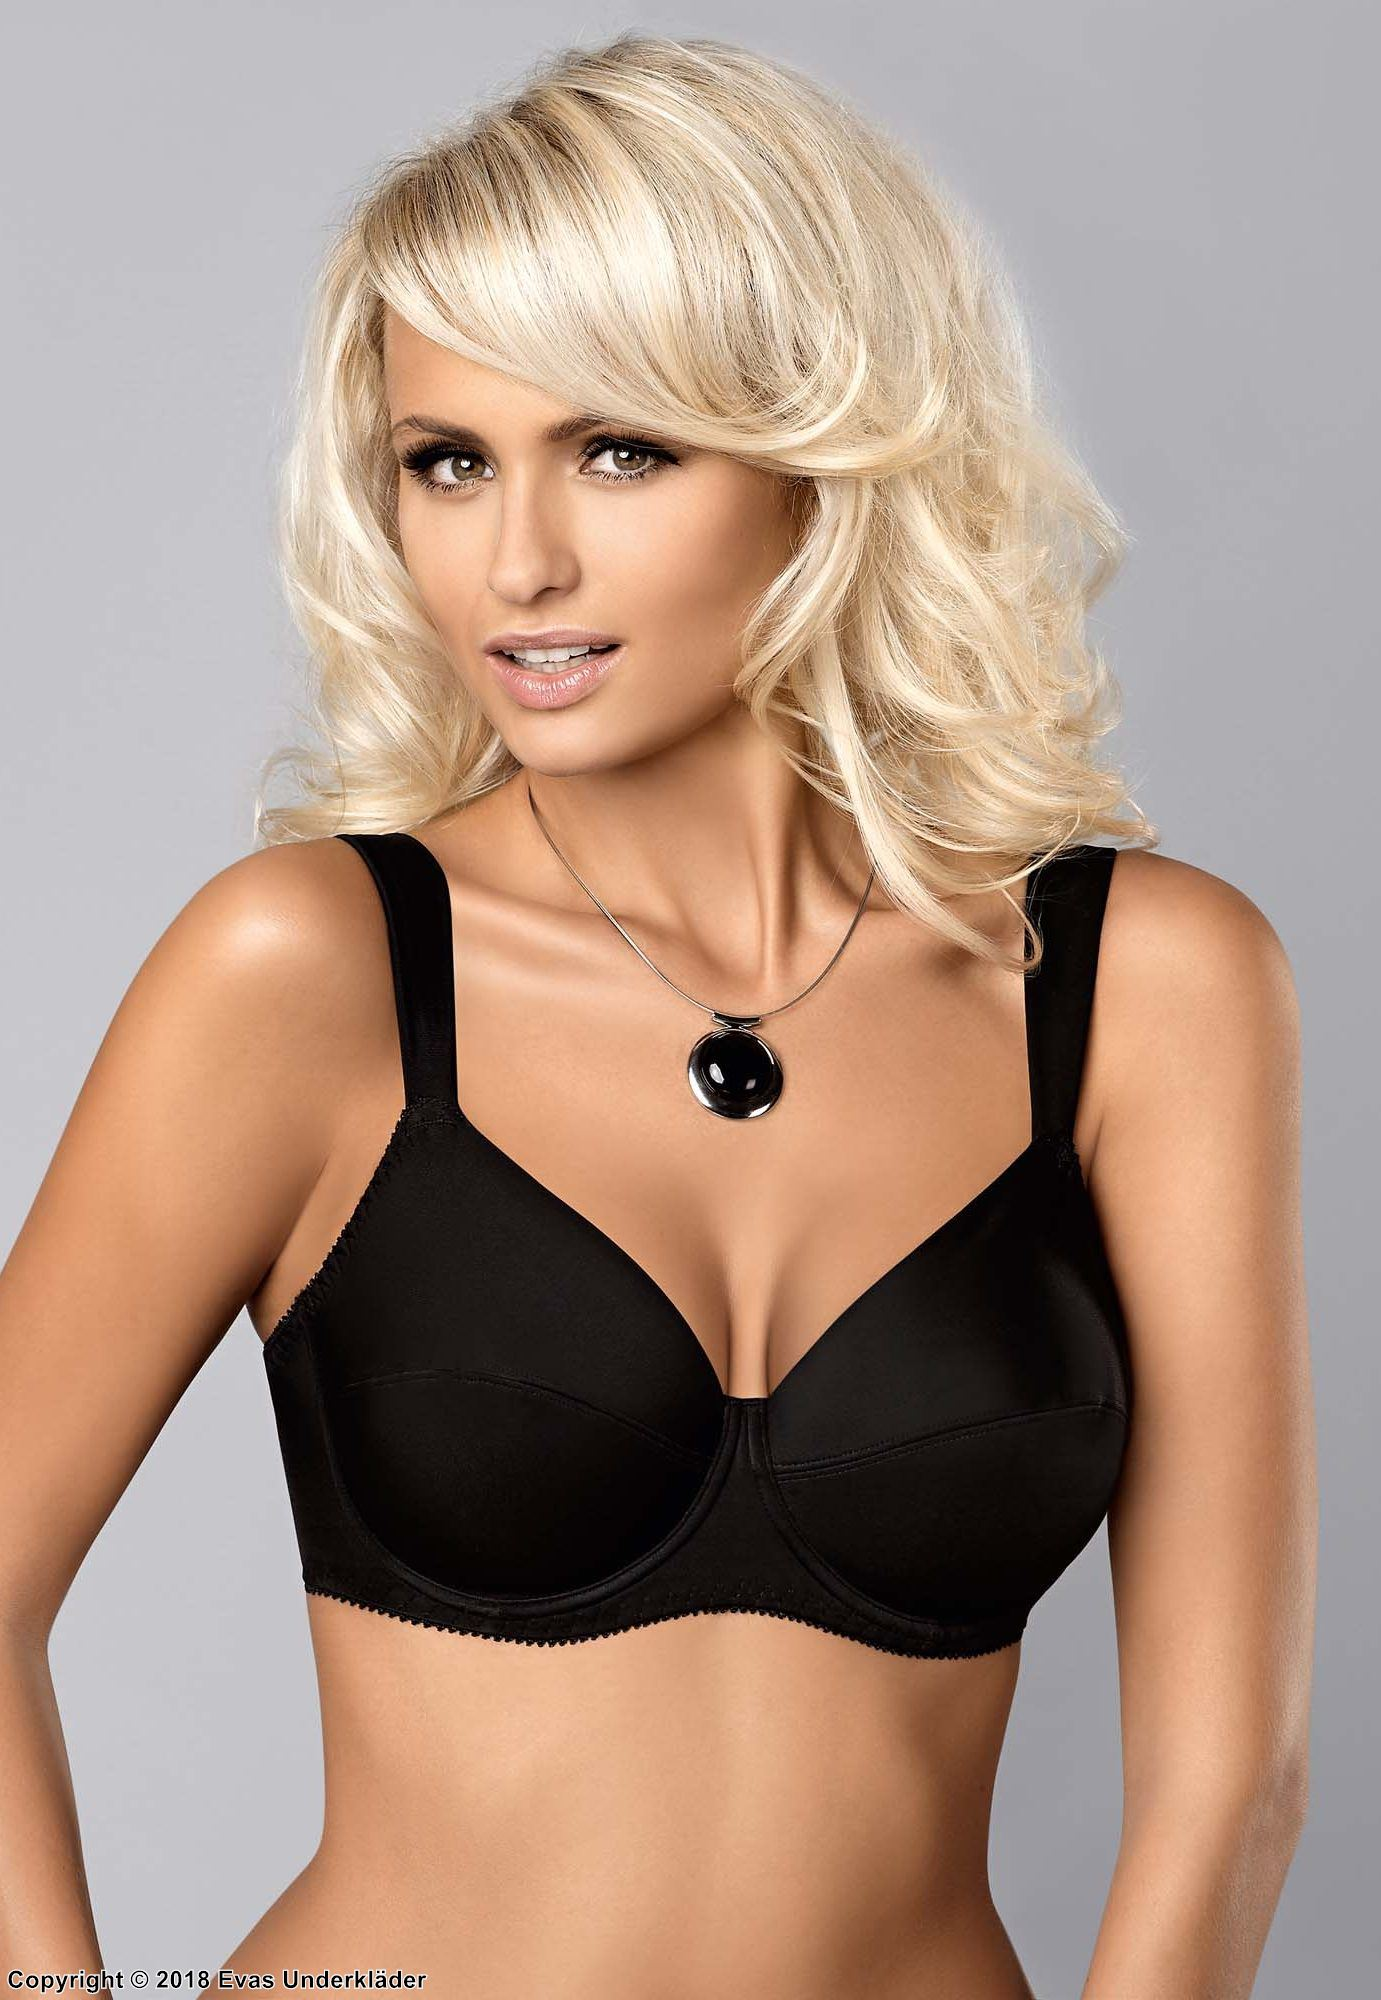 Very comfortable bra for sore shoulders, up to J-cup